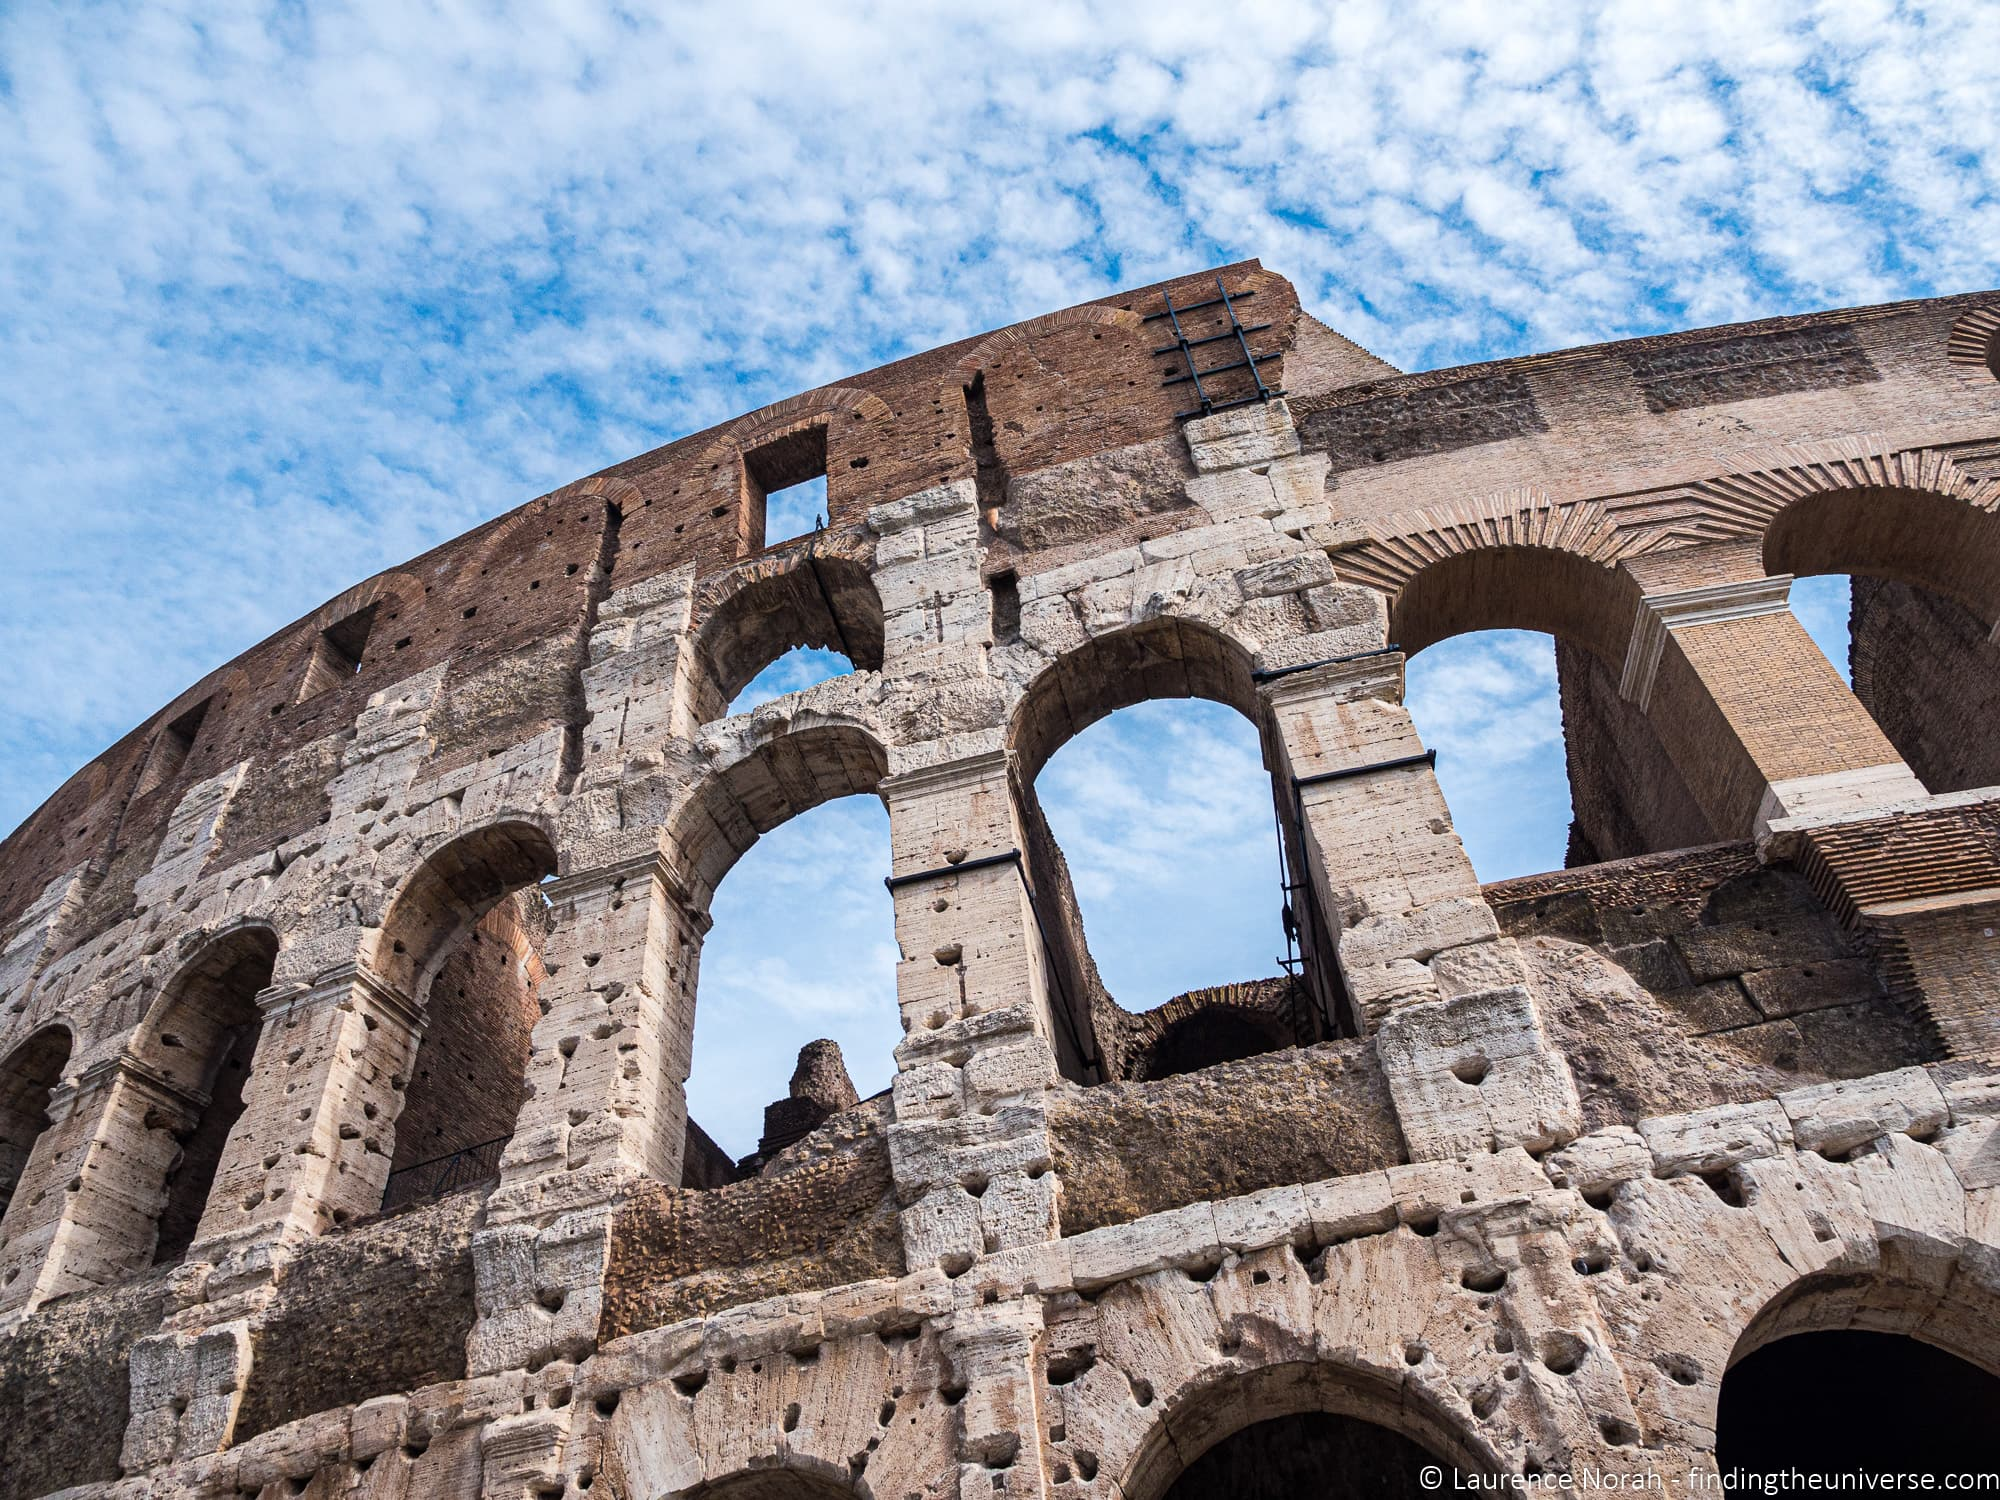 Visiting the Colosseum Rome